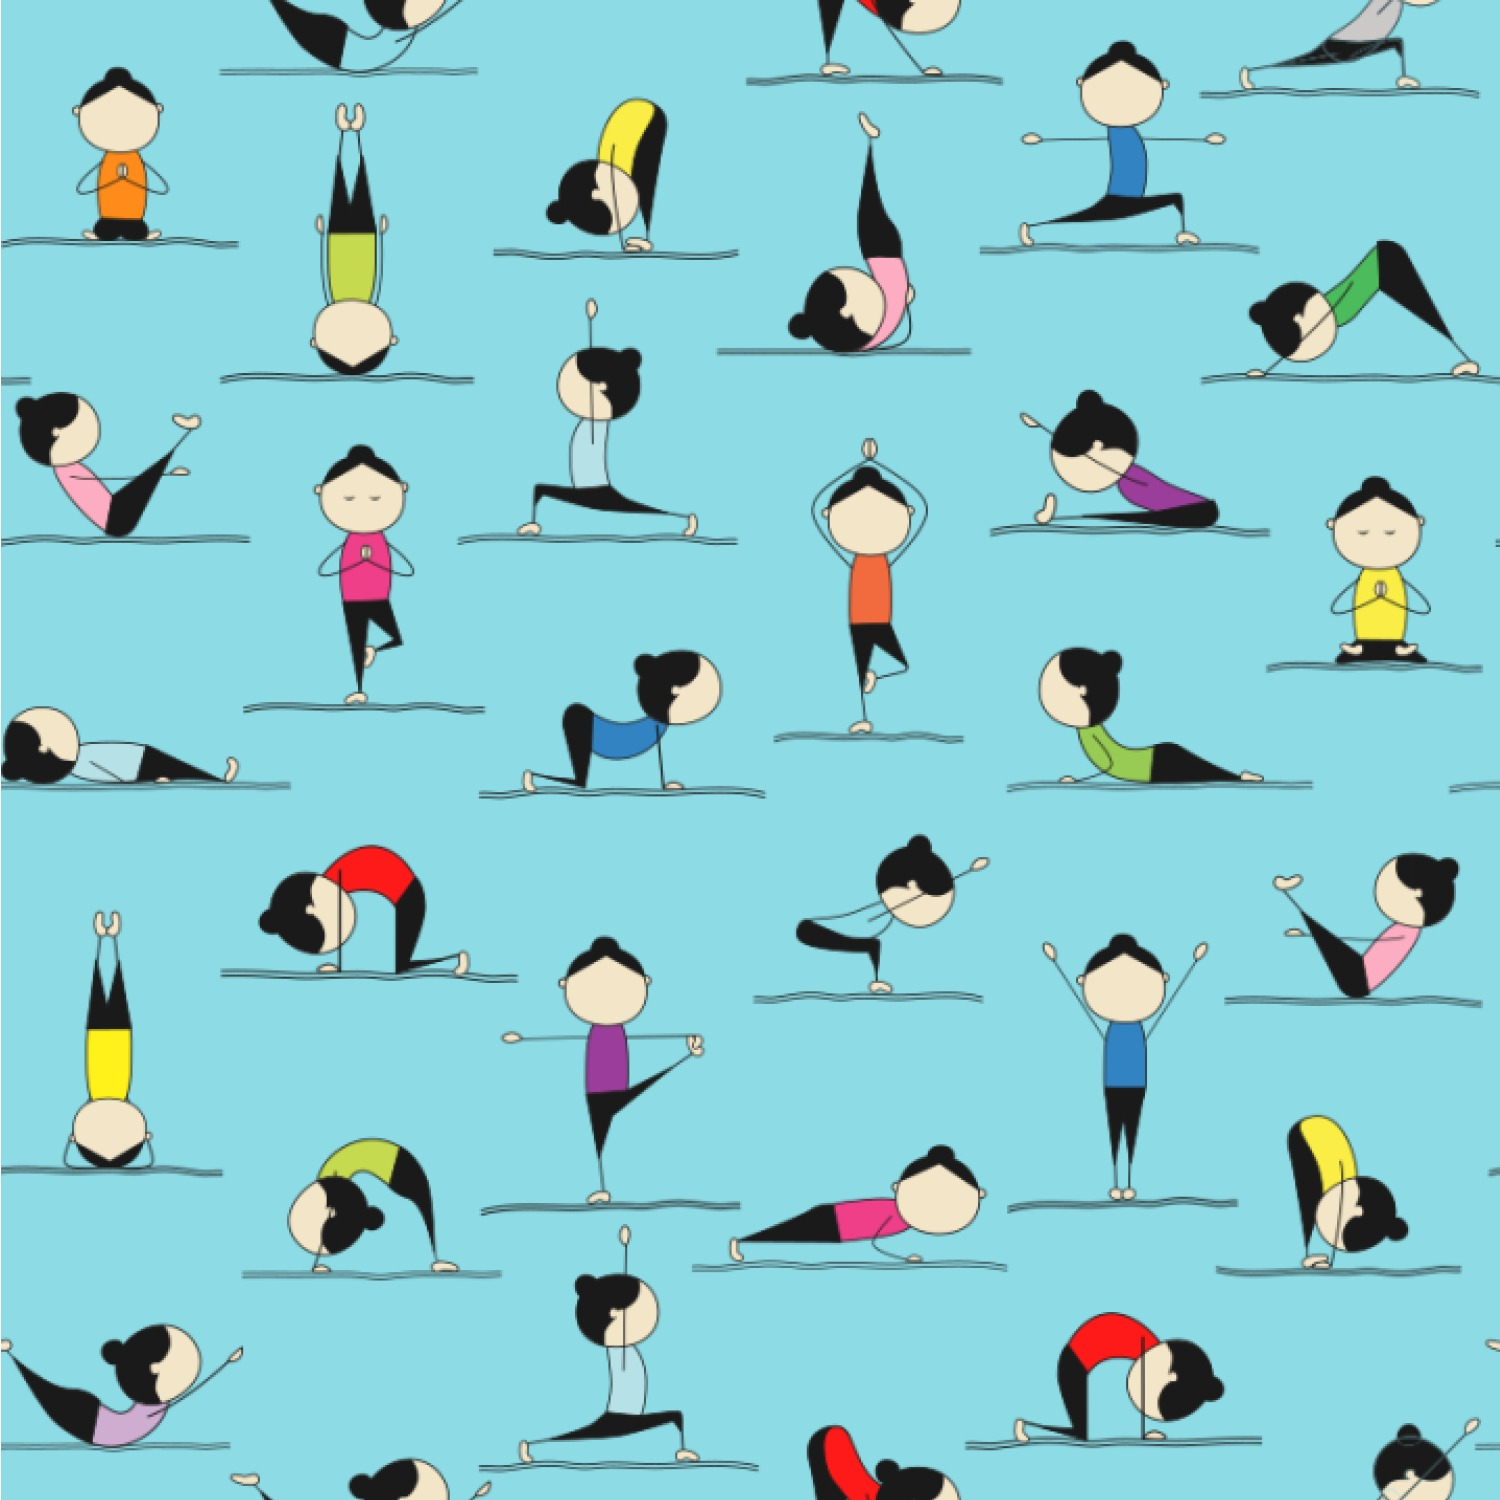 Yoga Poses Wallpaper & Surface Covering - You Customize It